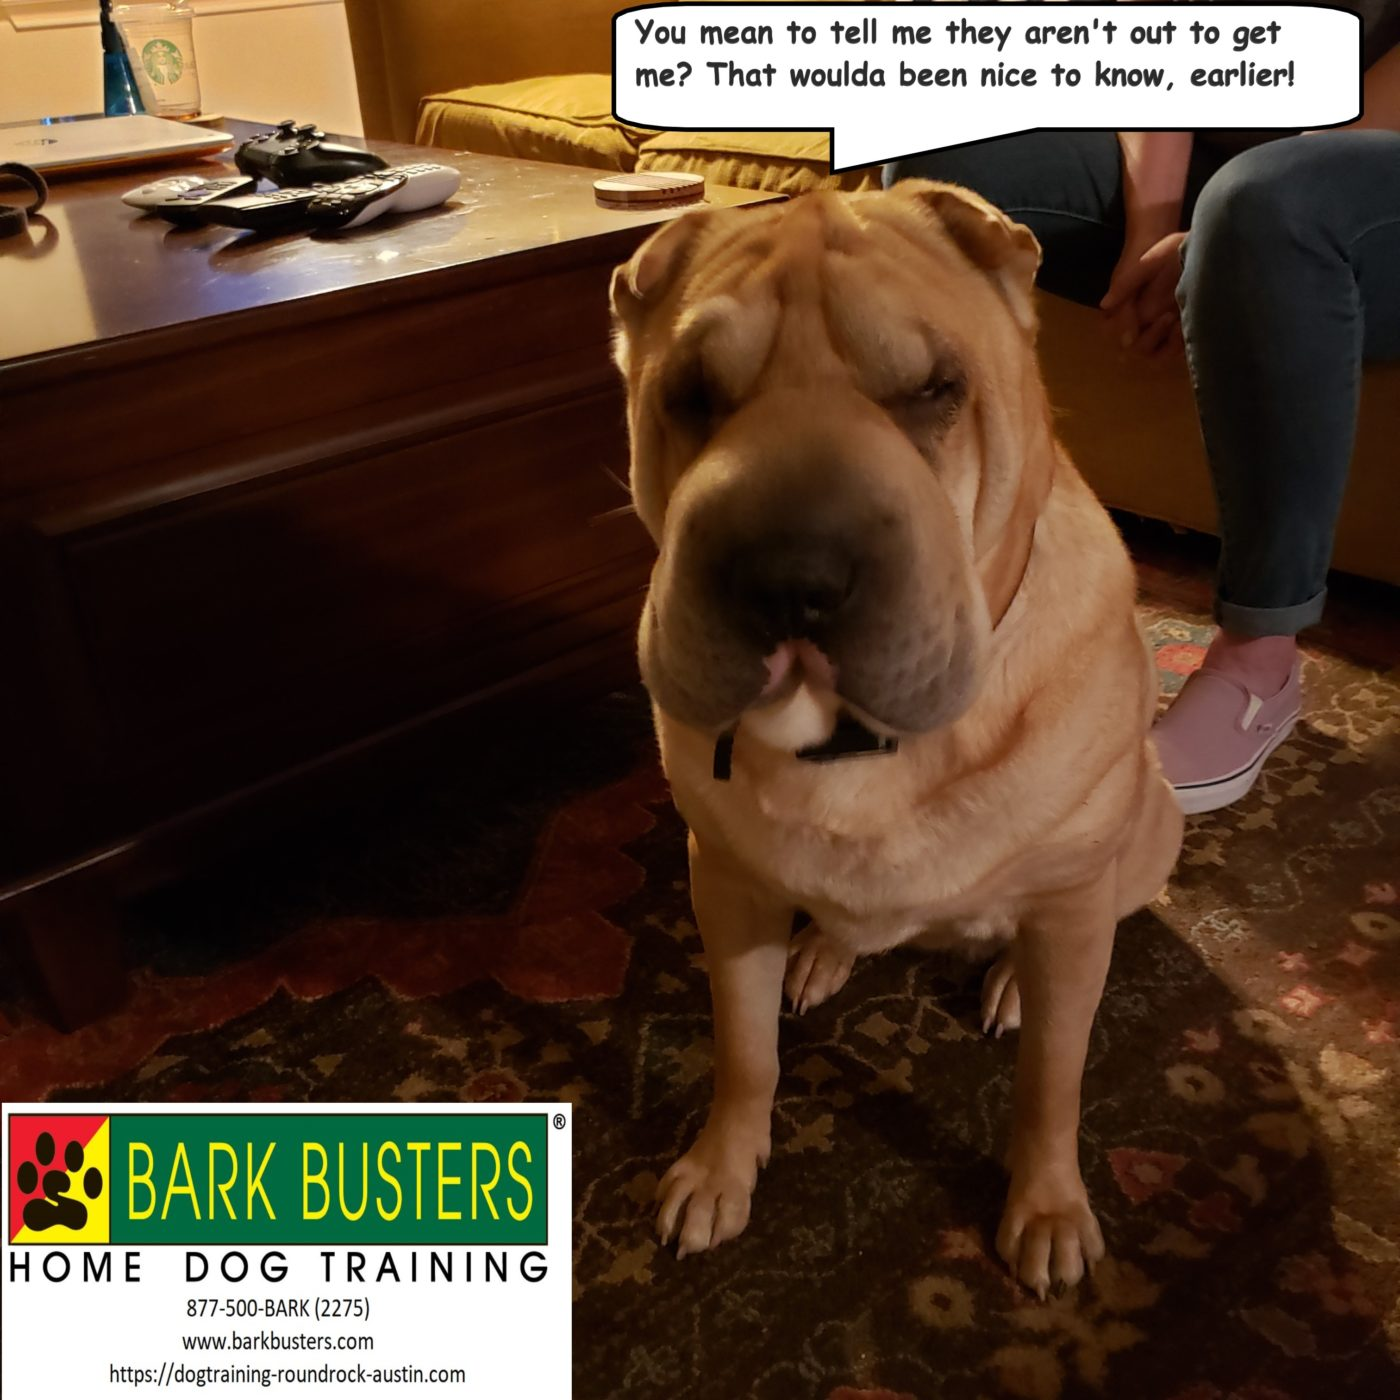 #sharpei #dogtrainingbastrop #dogsofbarkbusters #speakingdog #fearaggression